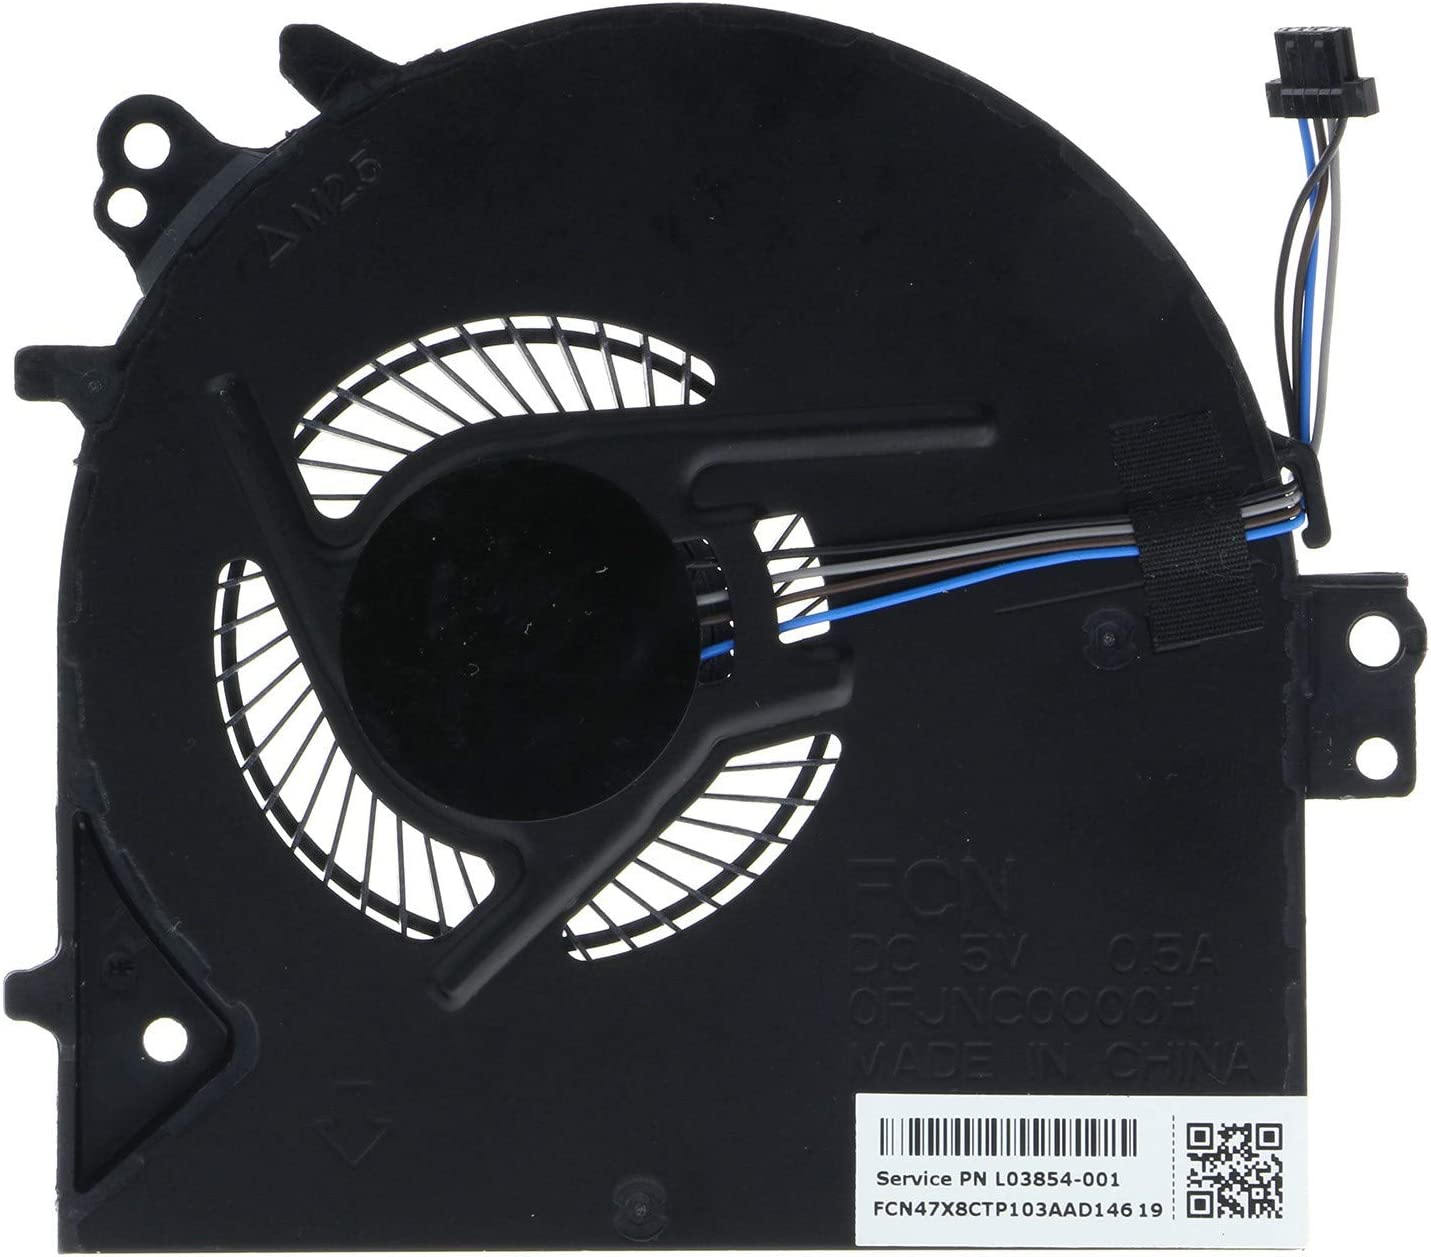 CPU Cooling Fan for HP Probook 450 G5 455 G5 Series L03854-001